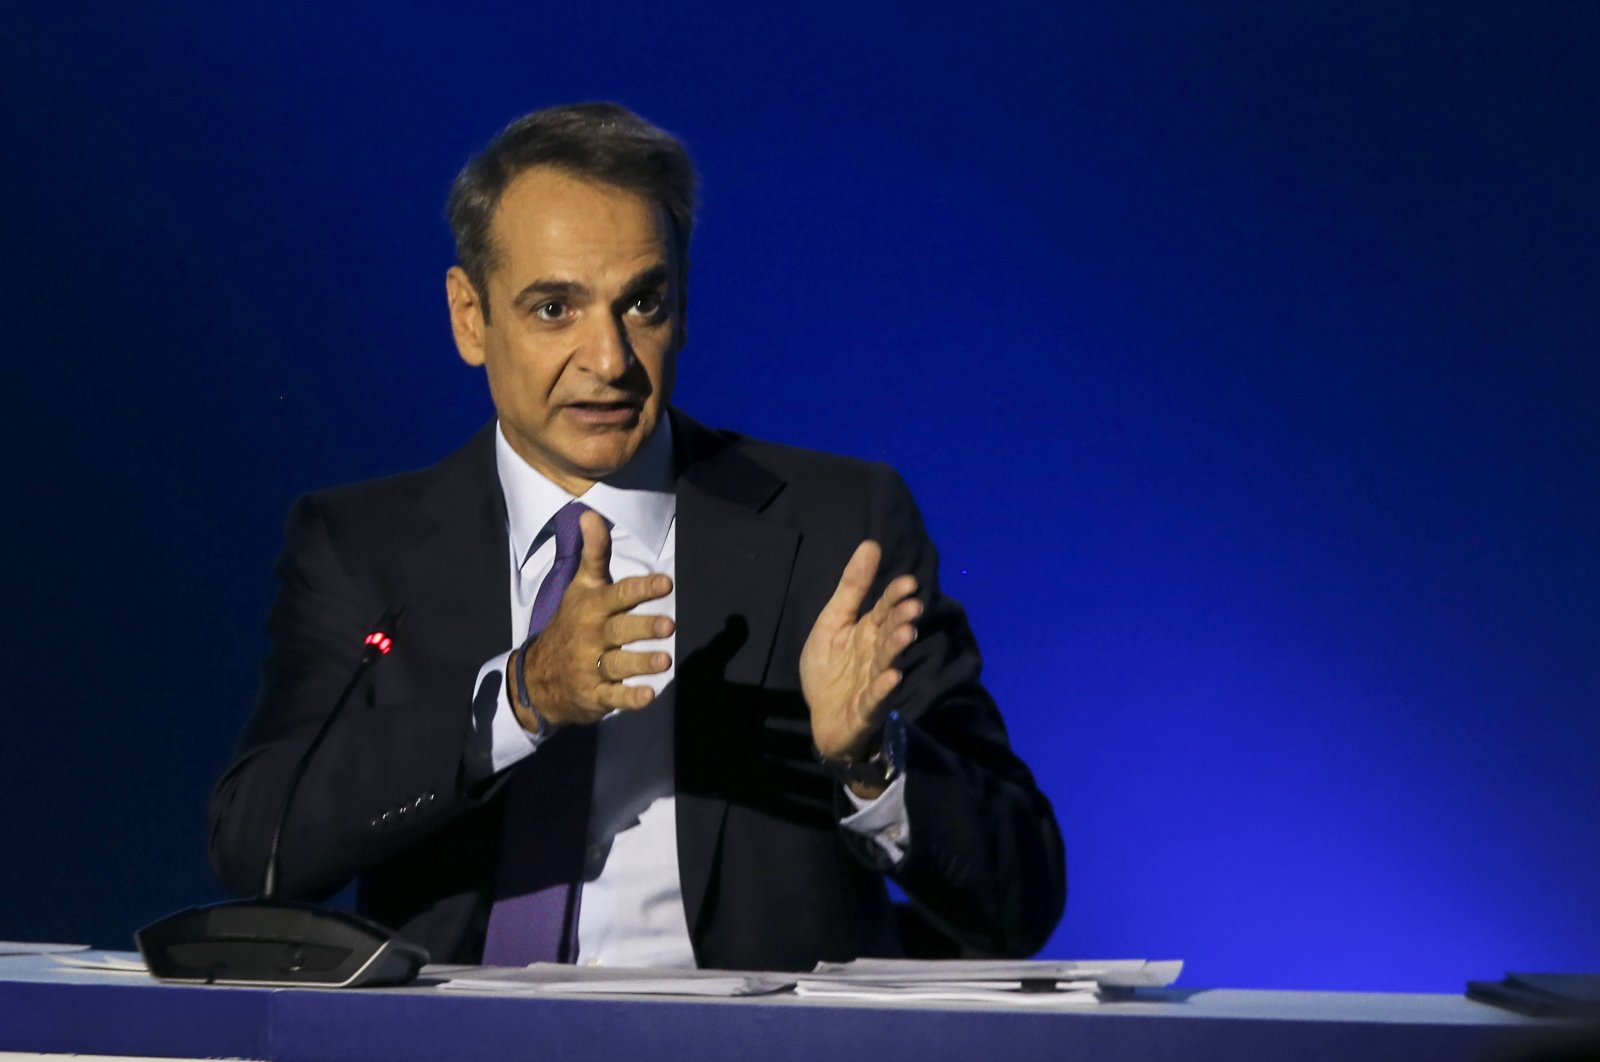 Greek Prime Minister Kyriakos Mitsotakis addresses journalists during a news conference in the northern city of Thessaloniki, Greece, Sept. 13, 2020. (AP Photo)